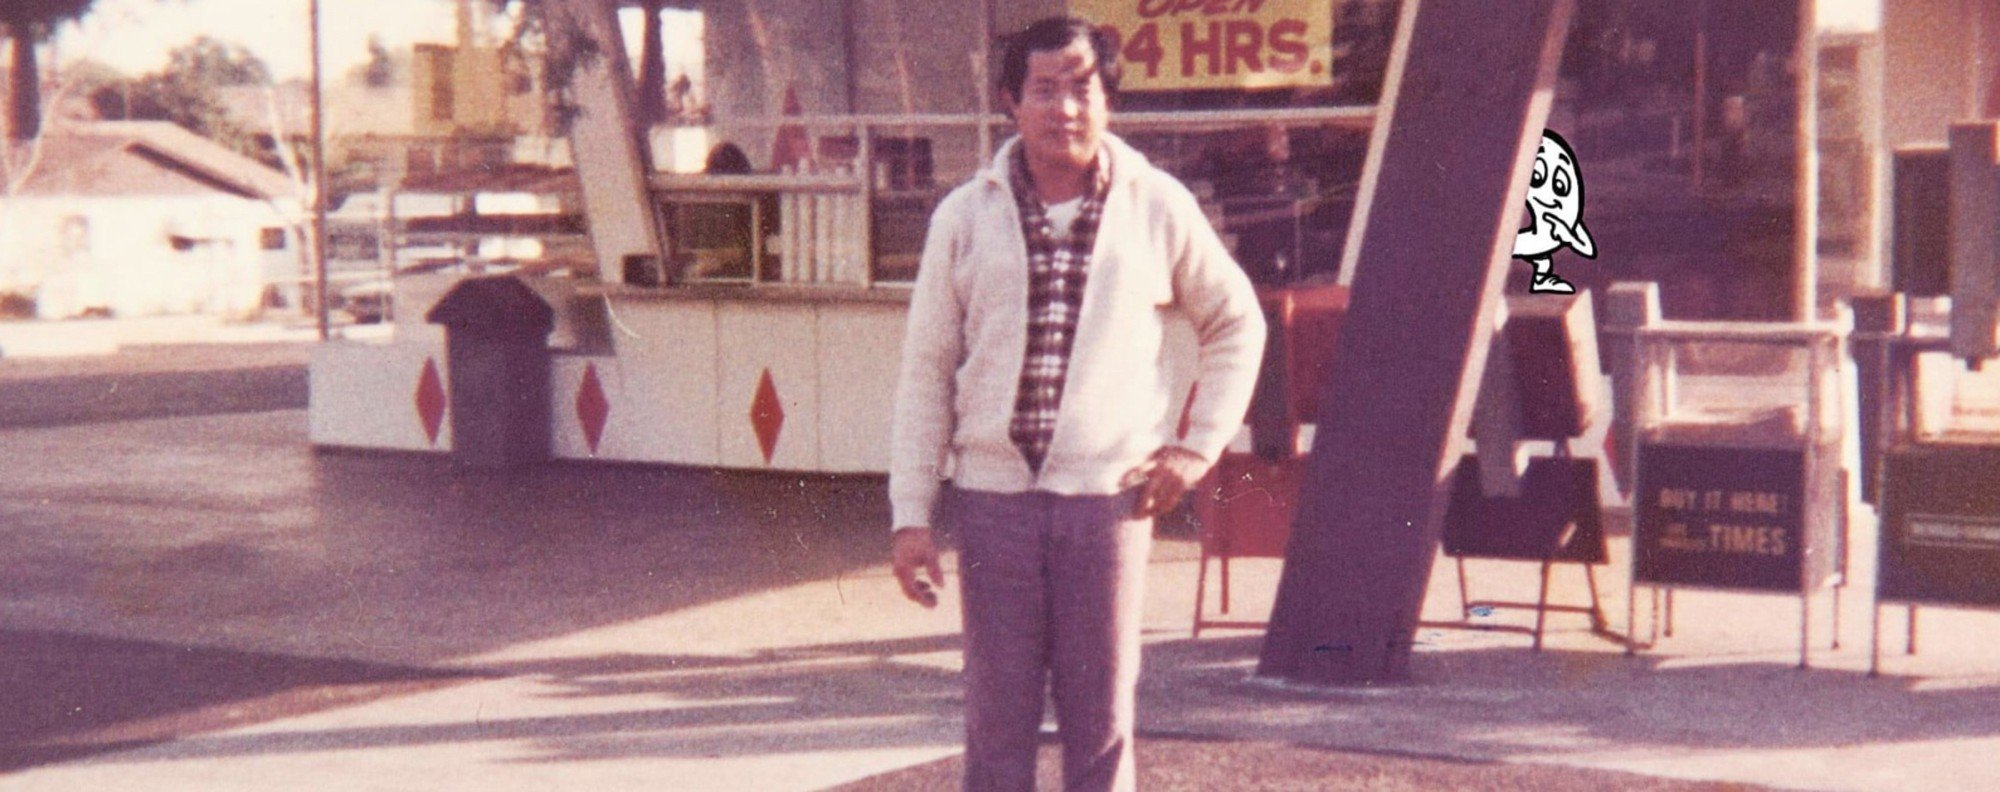 Ted Ngoy at his first doughnut shop in 1977. Photo: Ted Ngoy